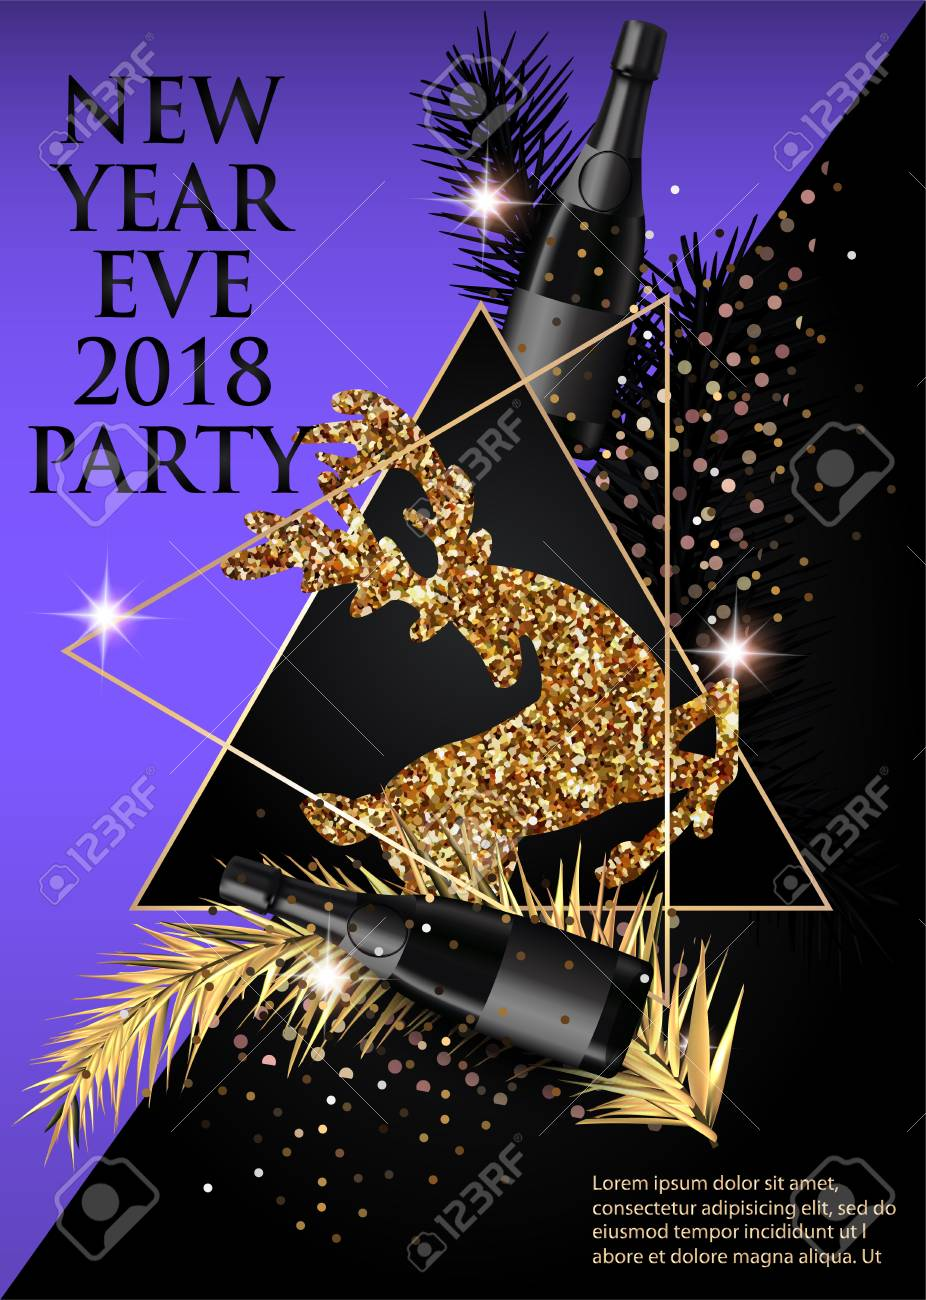 New Year Party Invitation Card With Christmas Tree Brunches